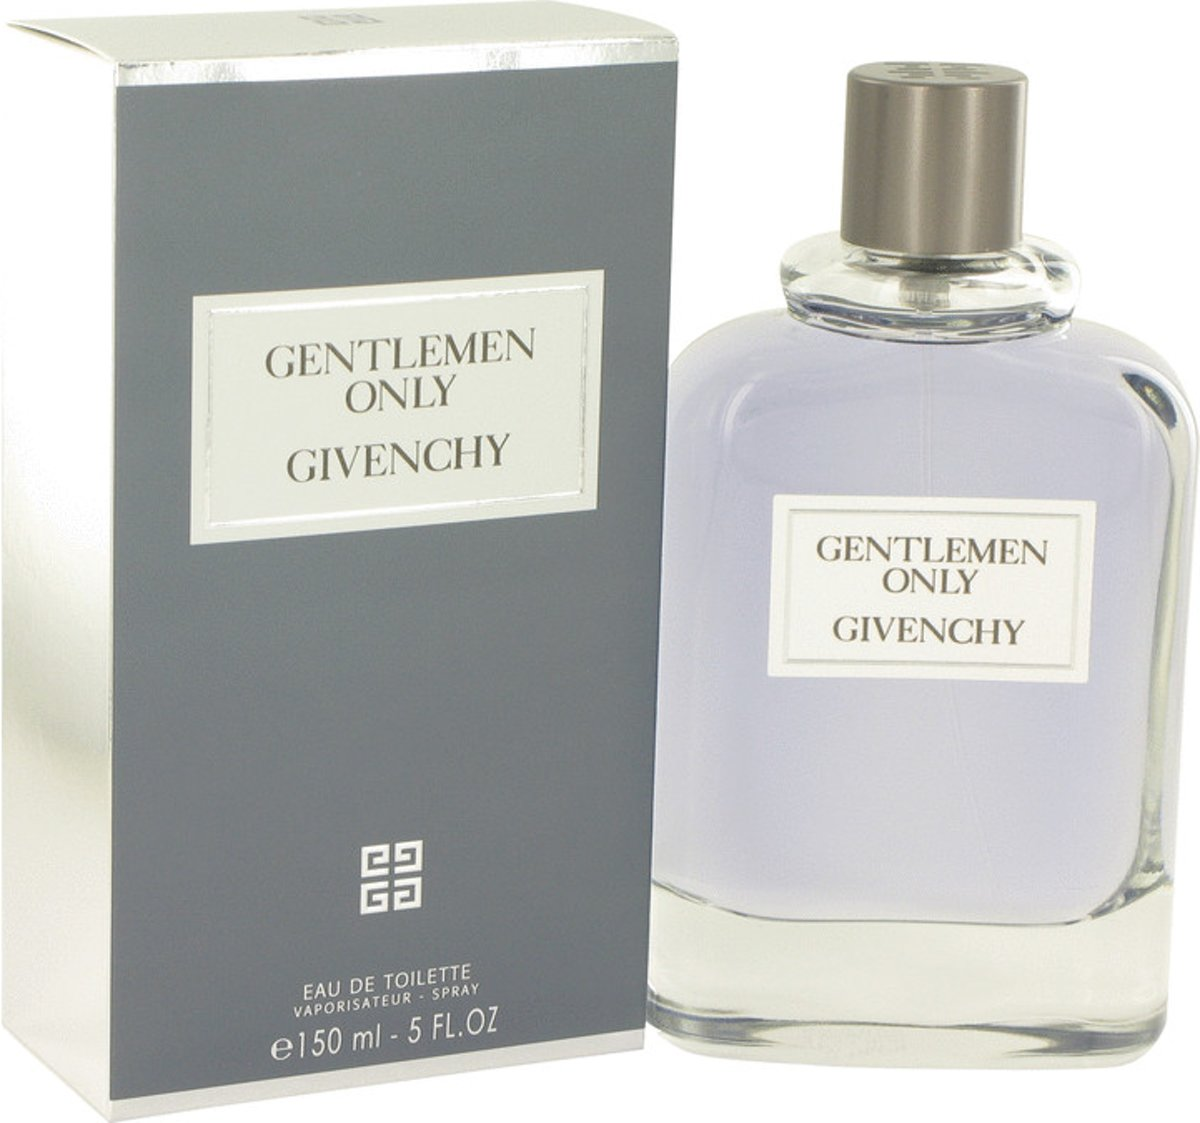 Givenchy Gentlemen Only 150 ml Eau de Toilette